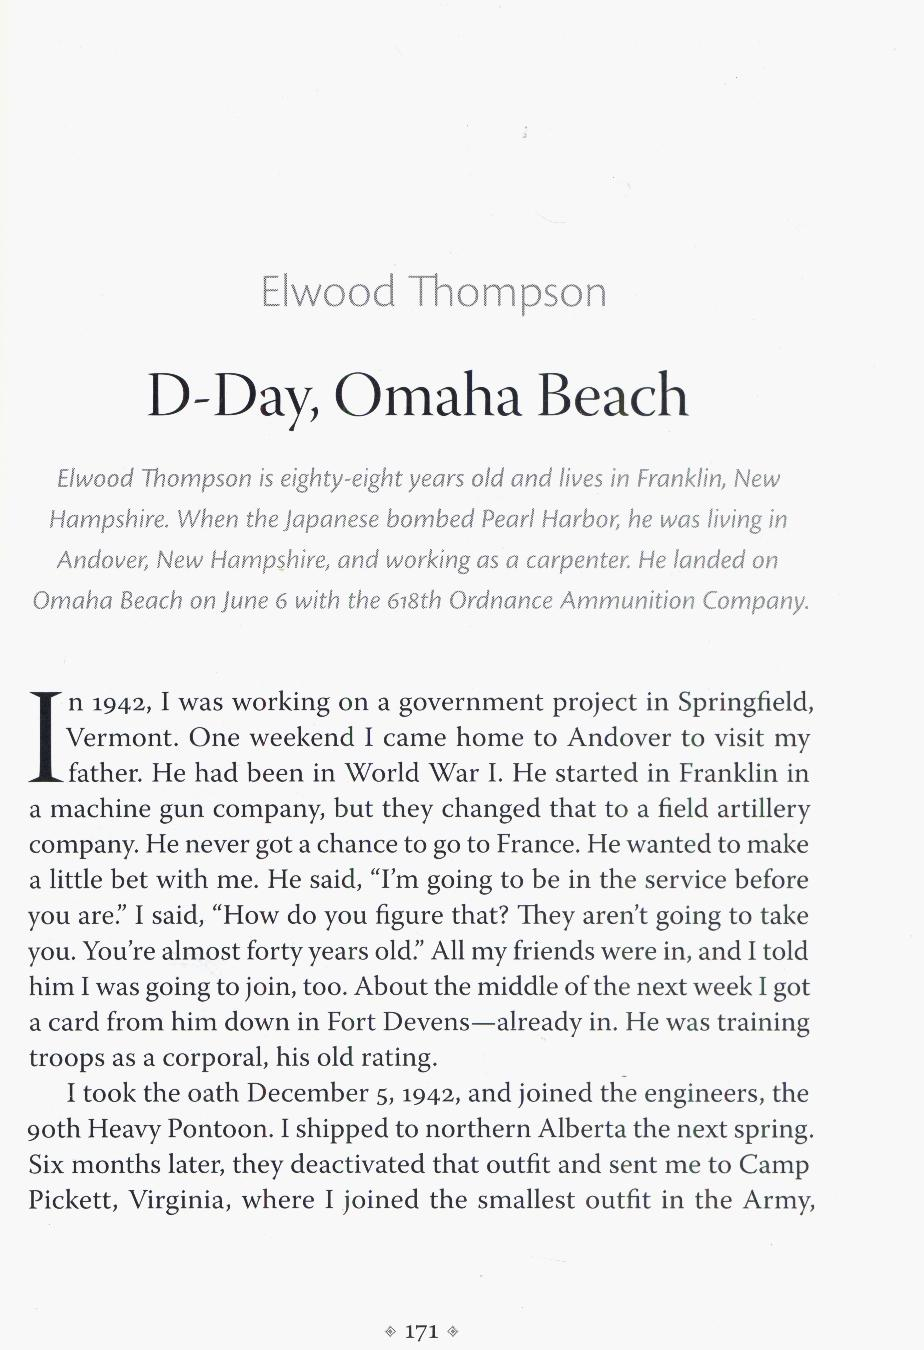 Elwood Thompson D-Day Survivor - Franklin NH